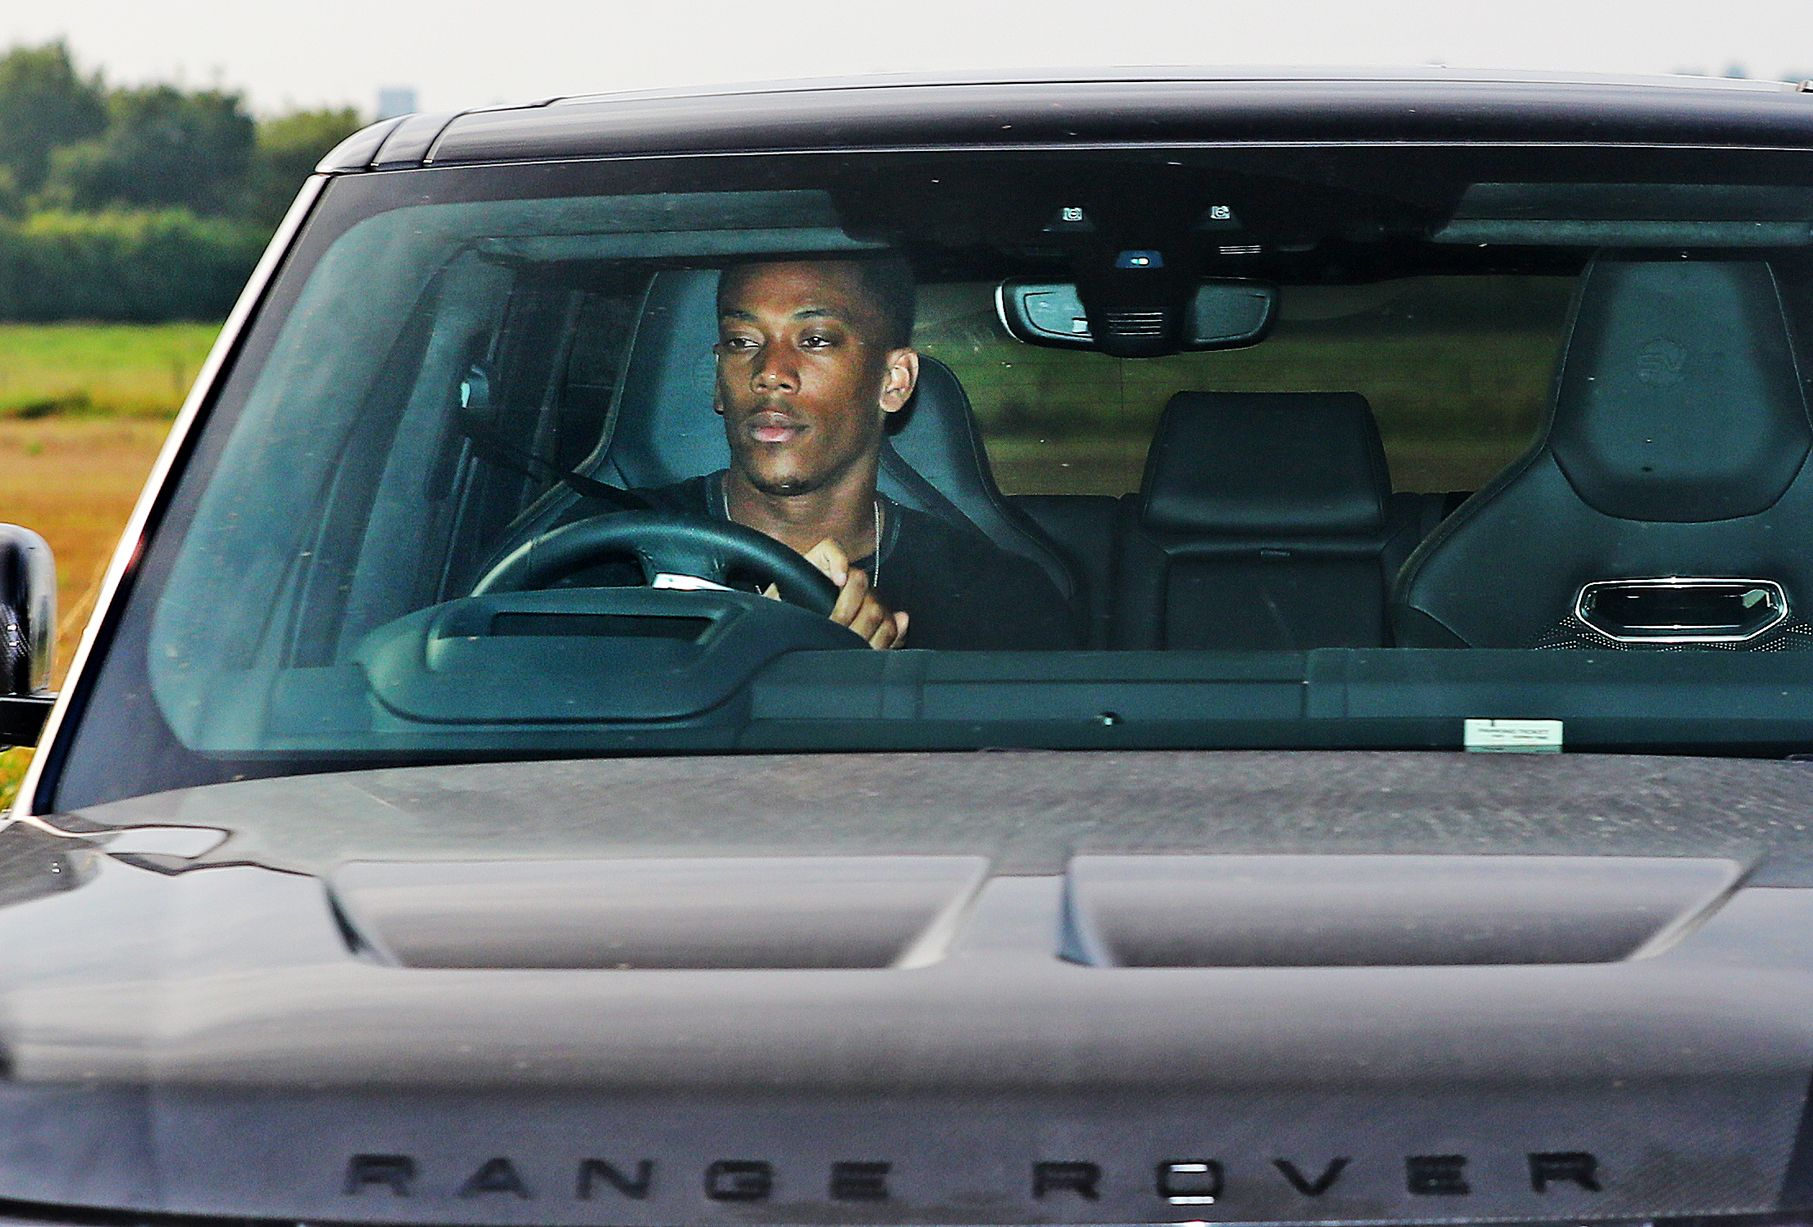 Pictures: Manchester United players arrive for training before Crystal Palace fixture - Bóng Đá